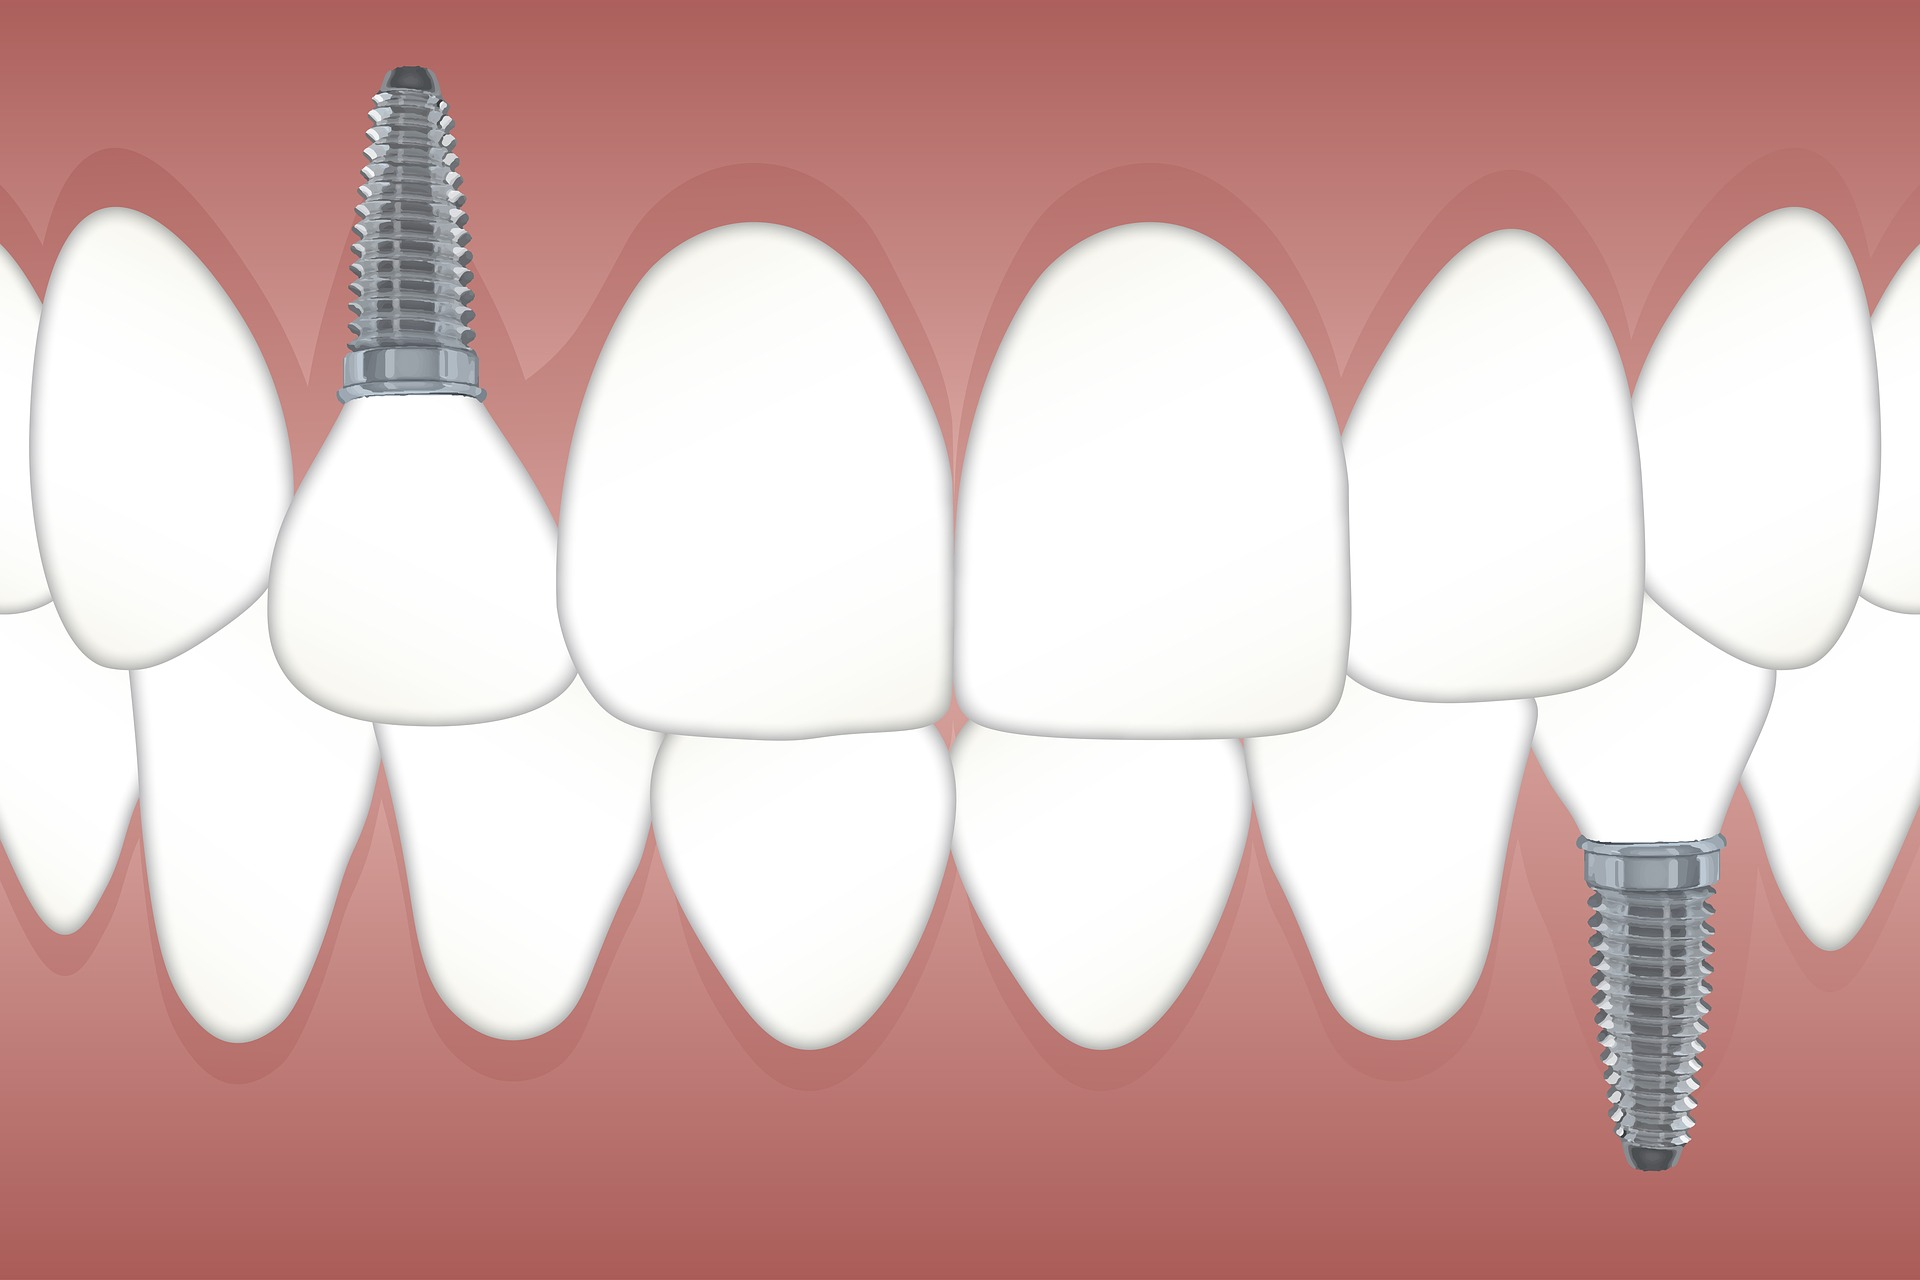 Tooth Extractions vs Dental Implants – What Is Best?